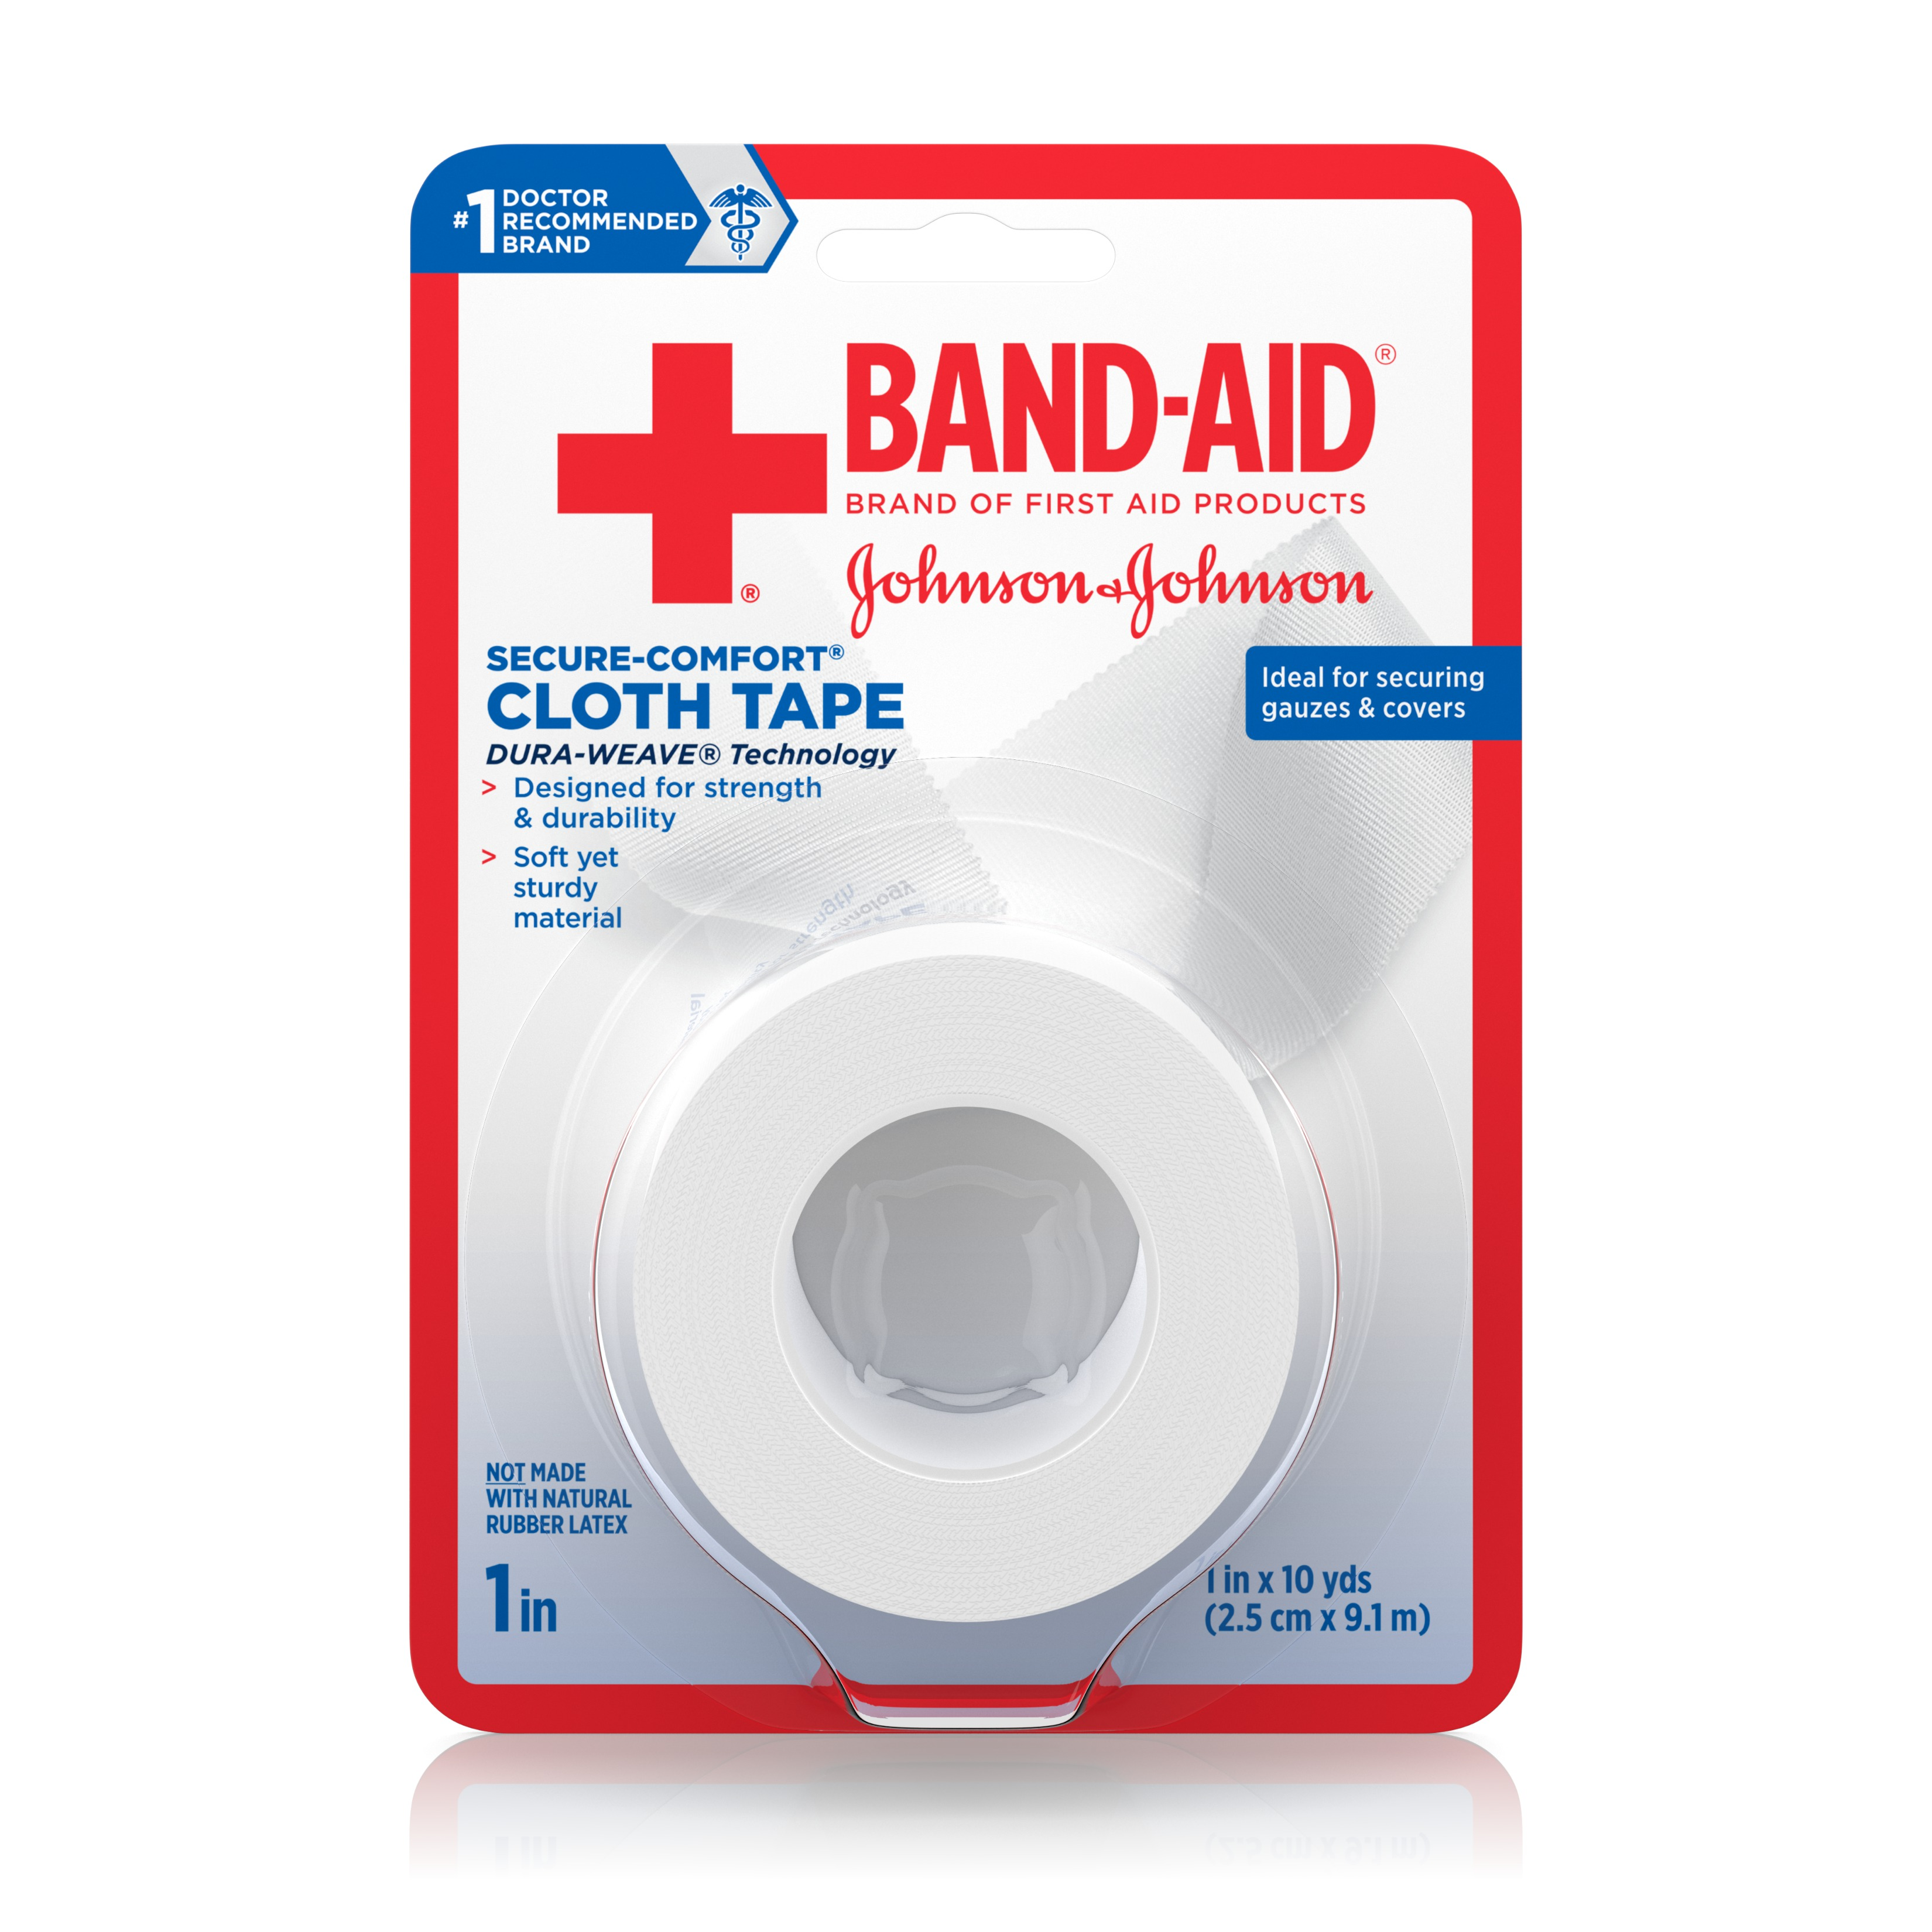 Band-Aid Brand First Aid Medical Cloth Tape, 1 in by 10 yd